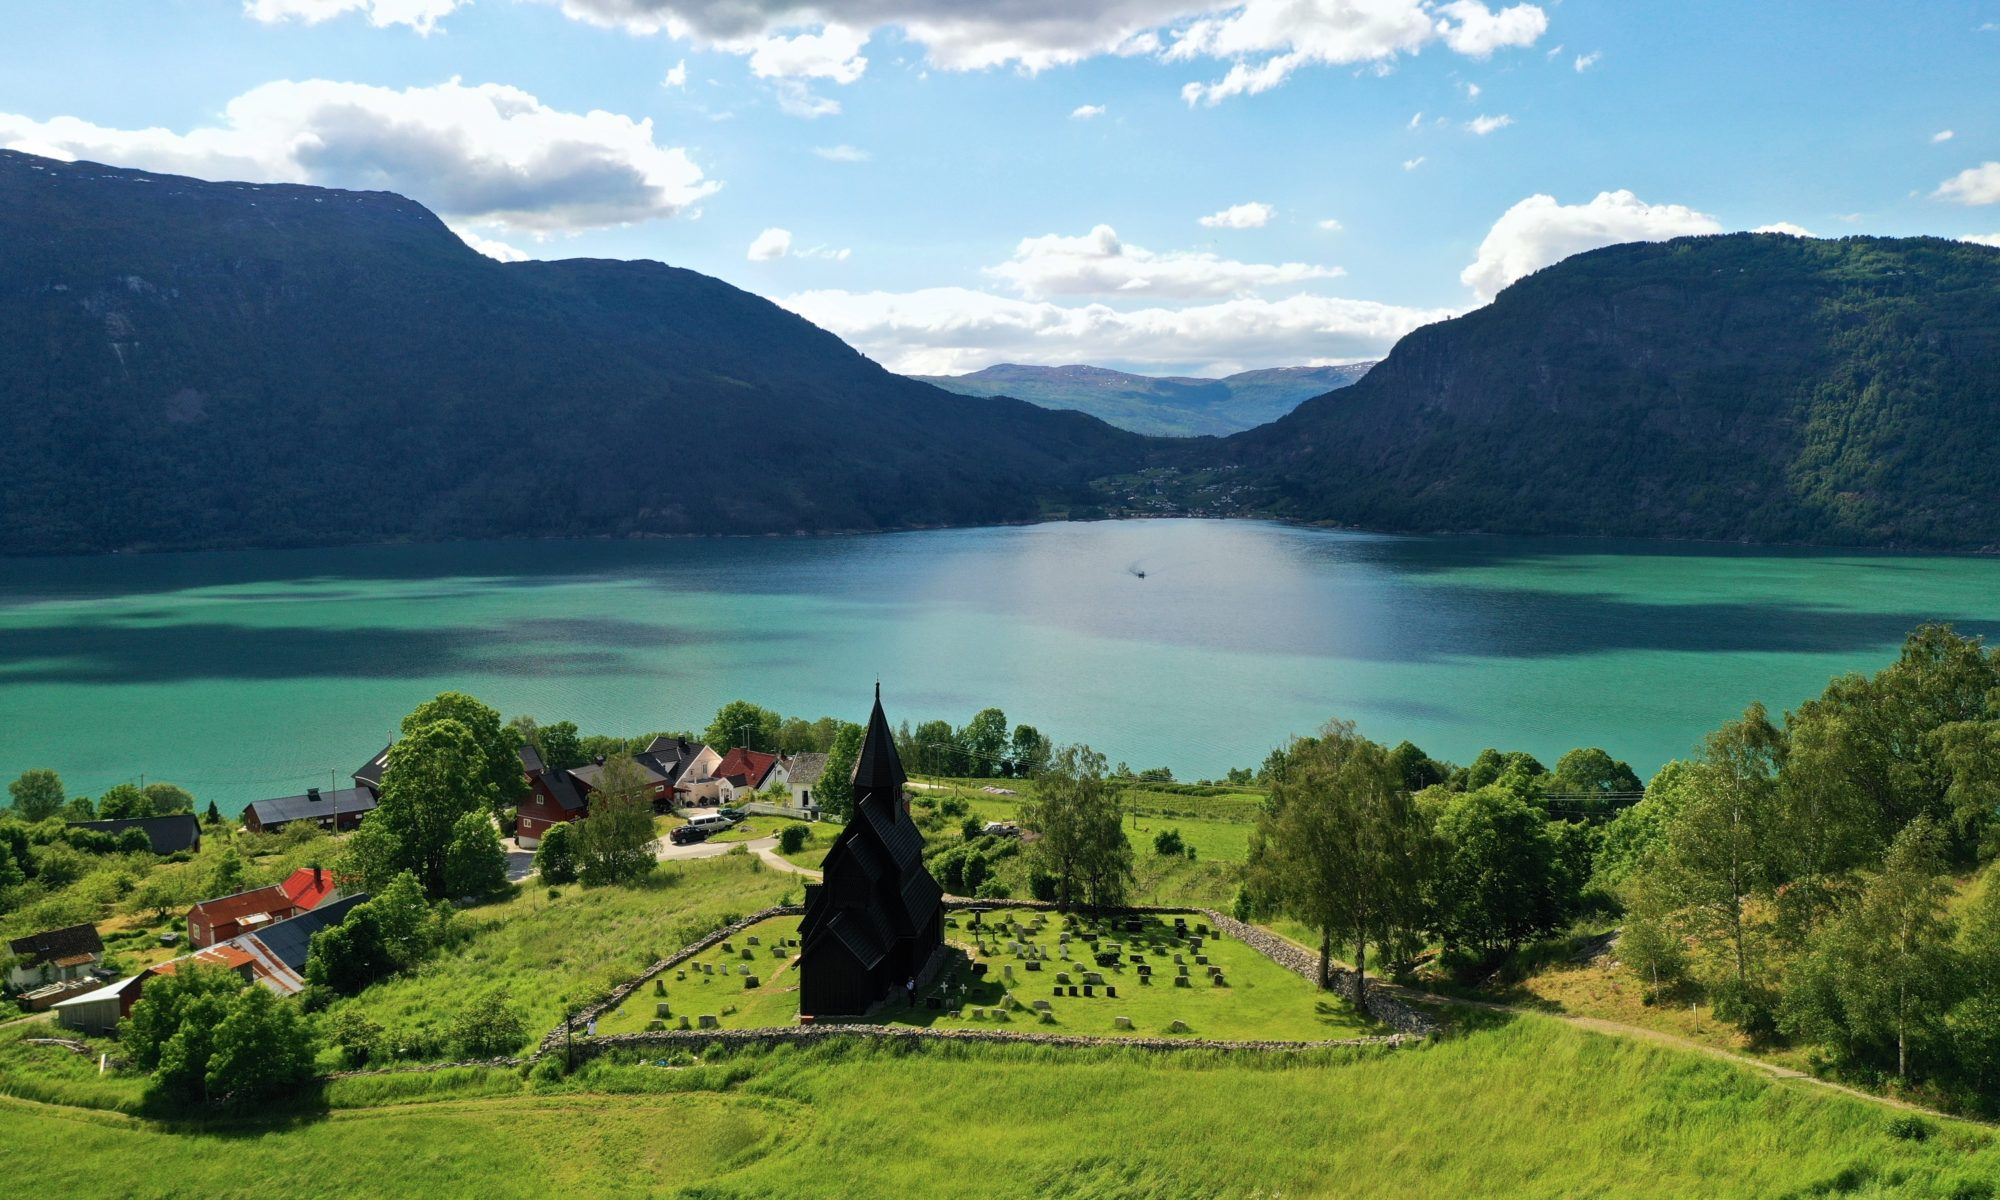 Fjords Norway - Urnes Stave Church by the Lustrafjord in Luster, Sognefjord in Norway